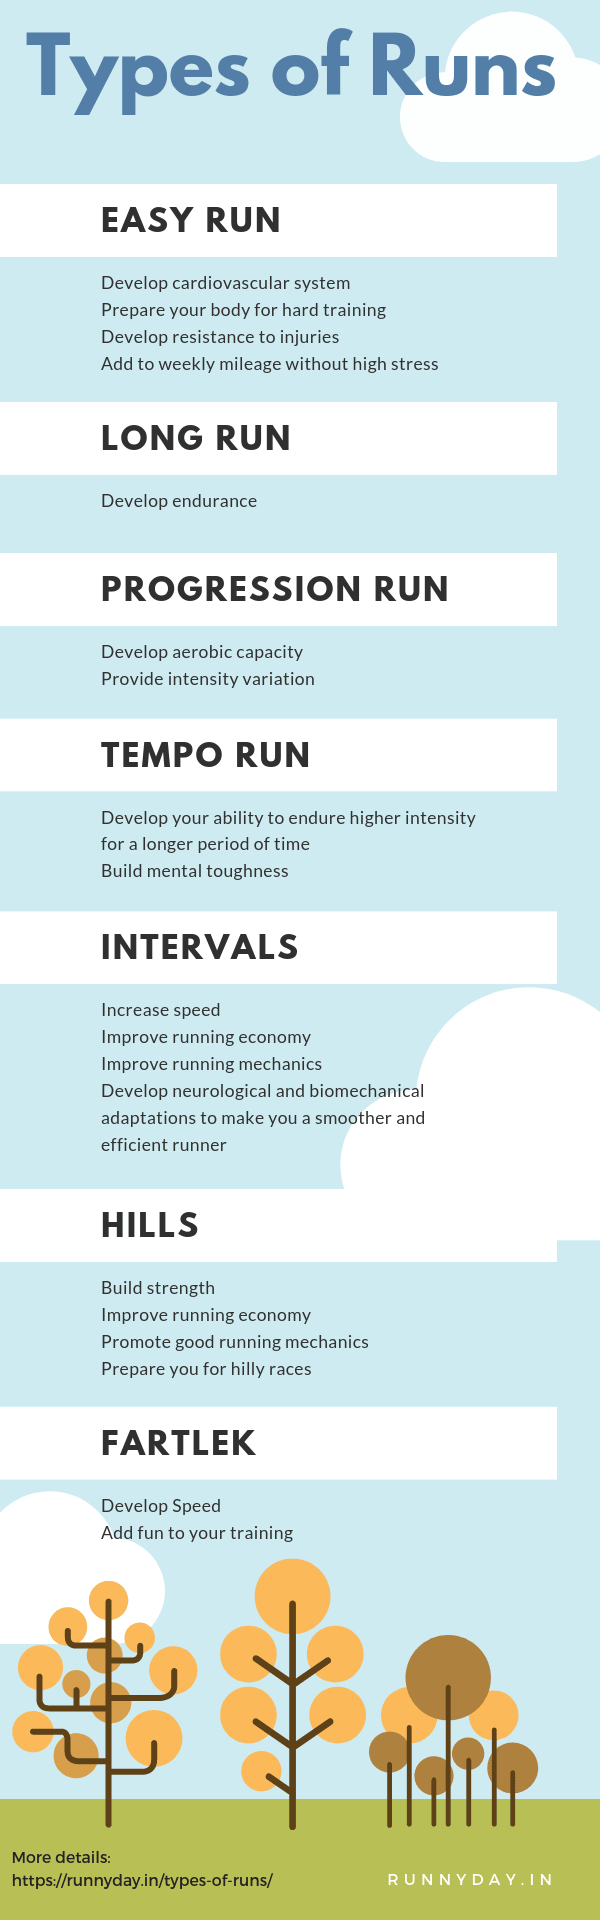 types of runs infographic